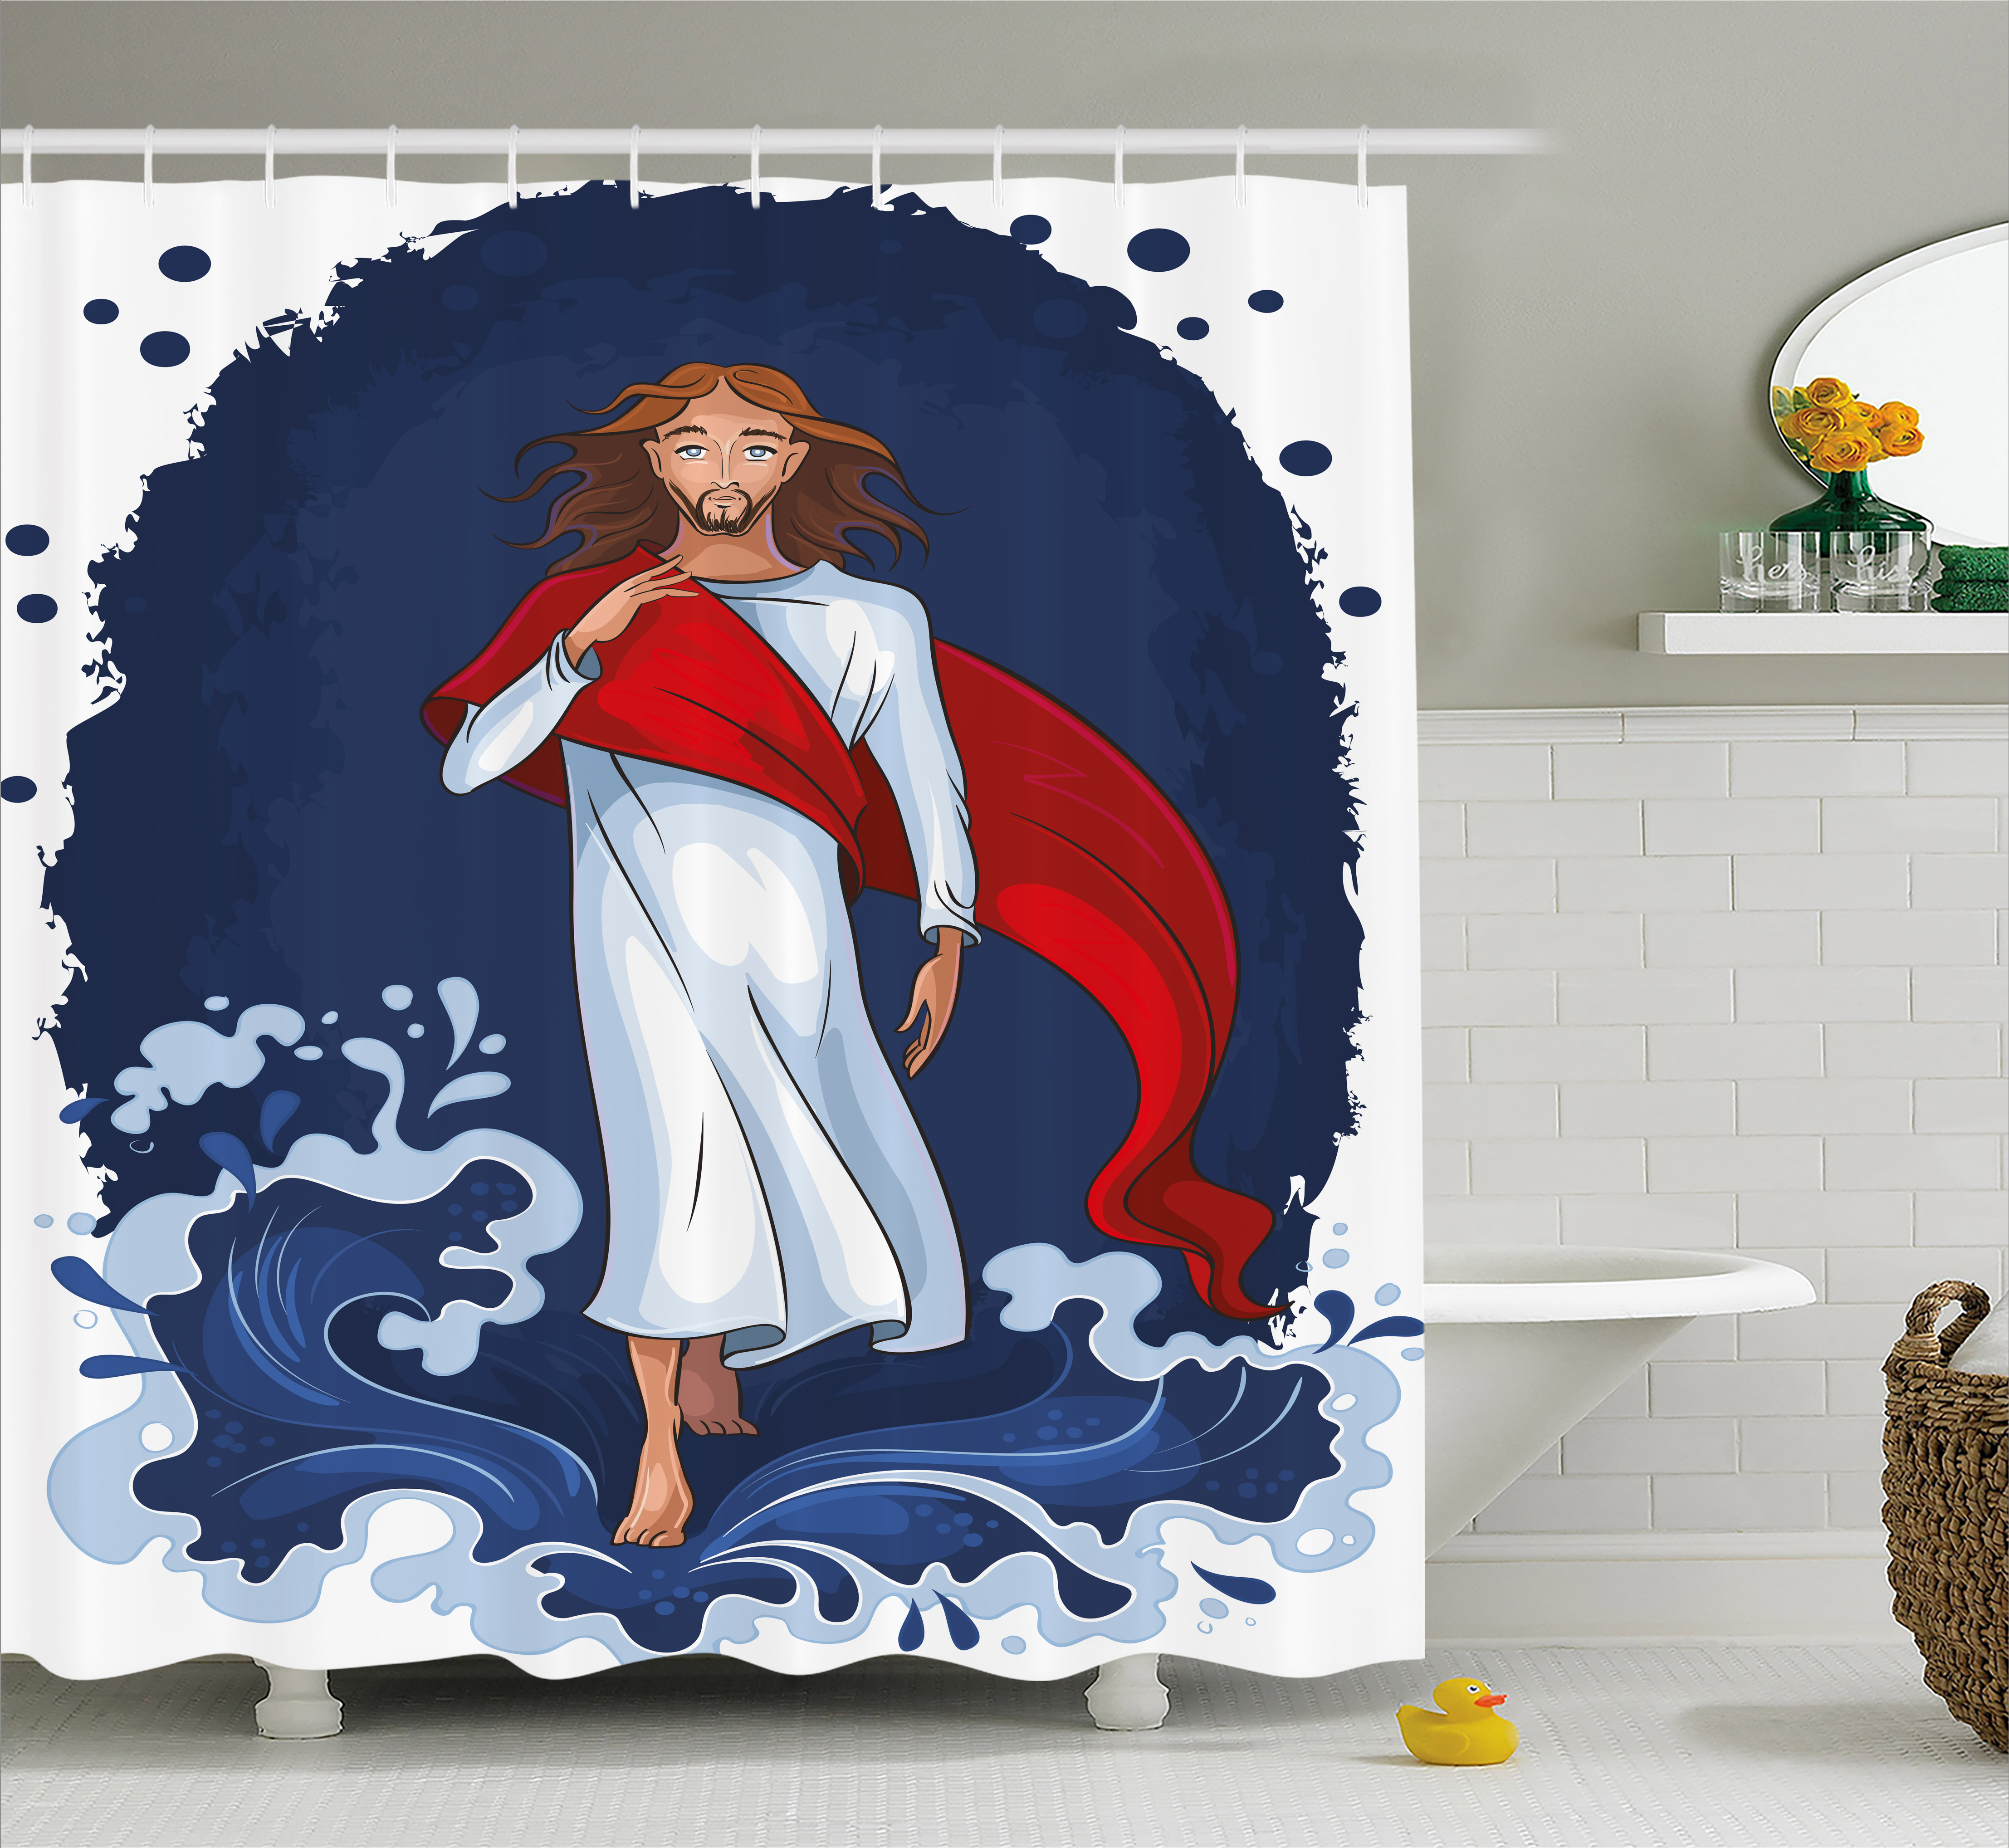 Religious Shower Curtain, Biblical Cartoon Messiah Walking on Water Miracle Religion Faith Belief, Fabric Bathroom Set with Hooks, 69W X 70L Inches, Navy Blue White Red, by Ambesonne